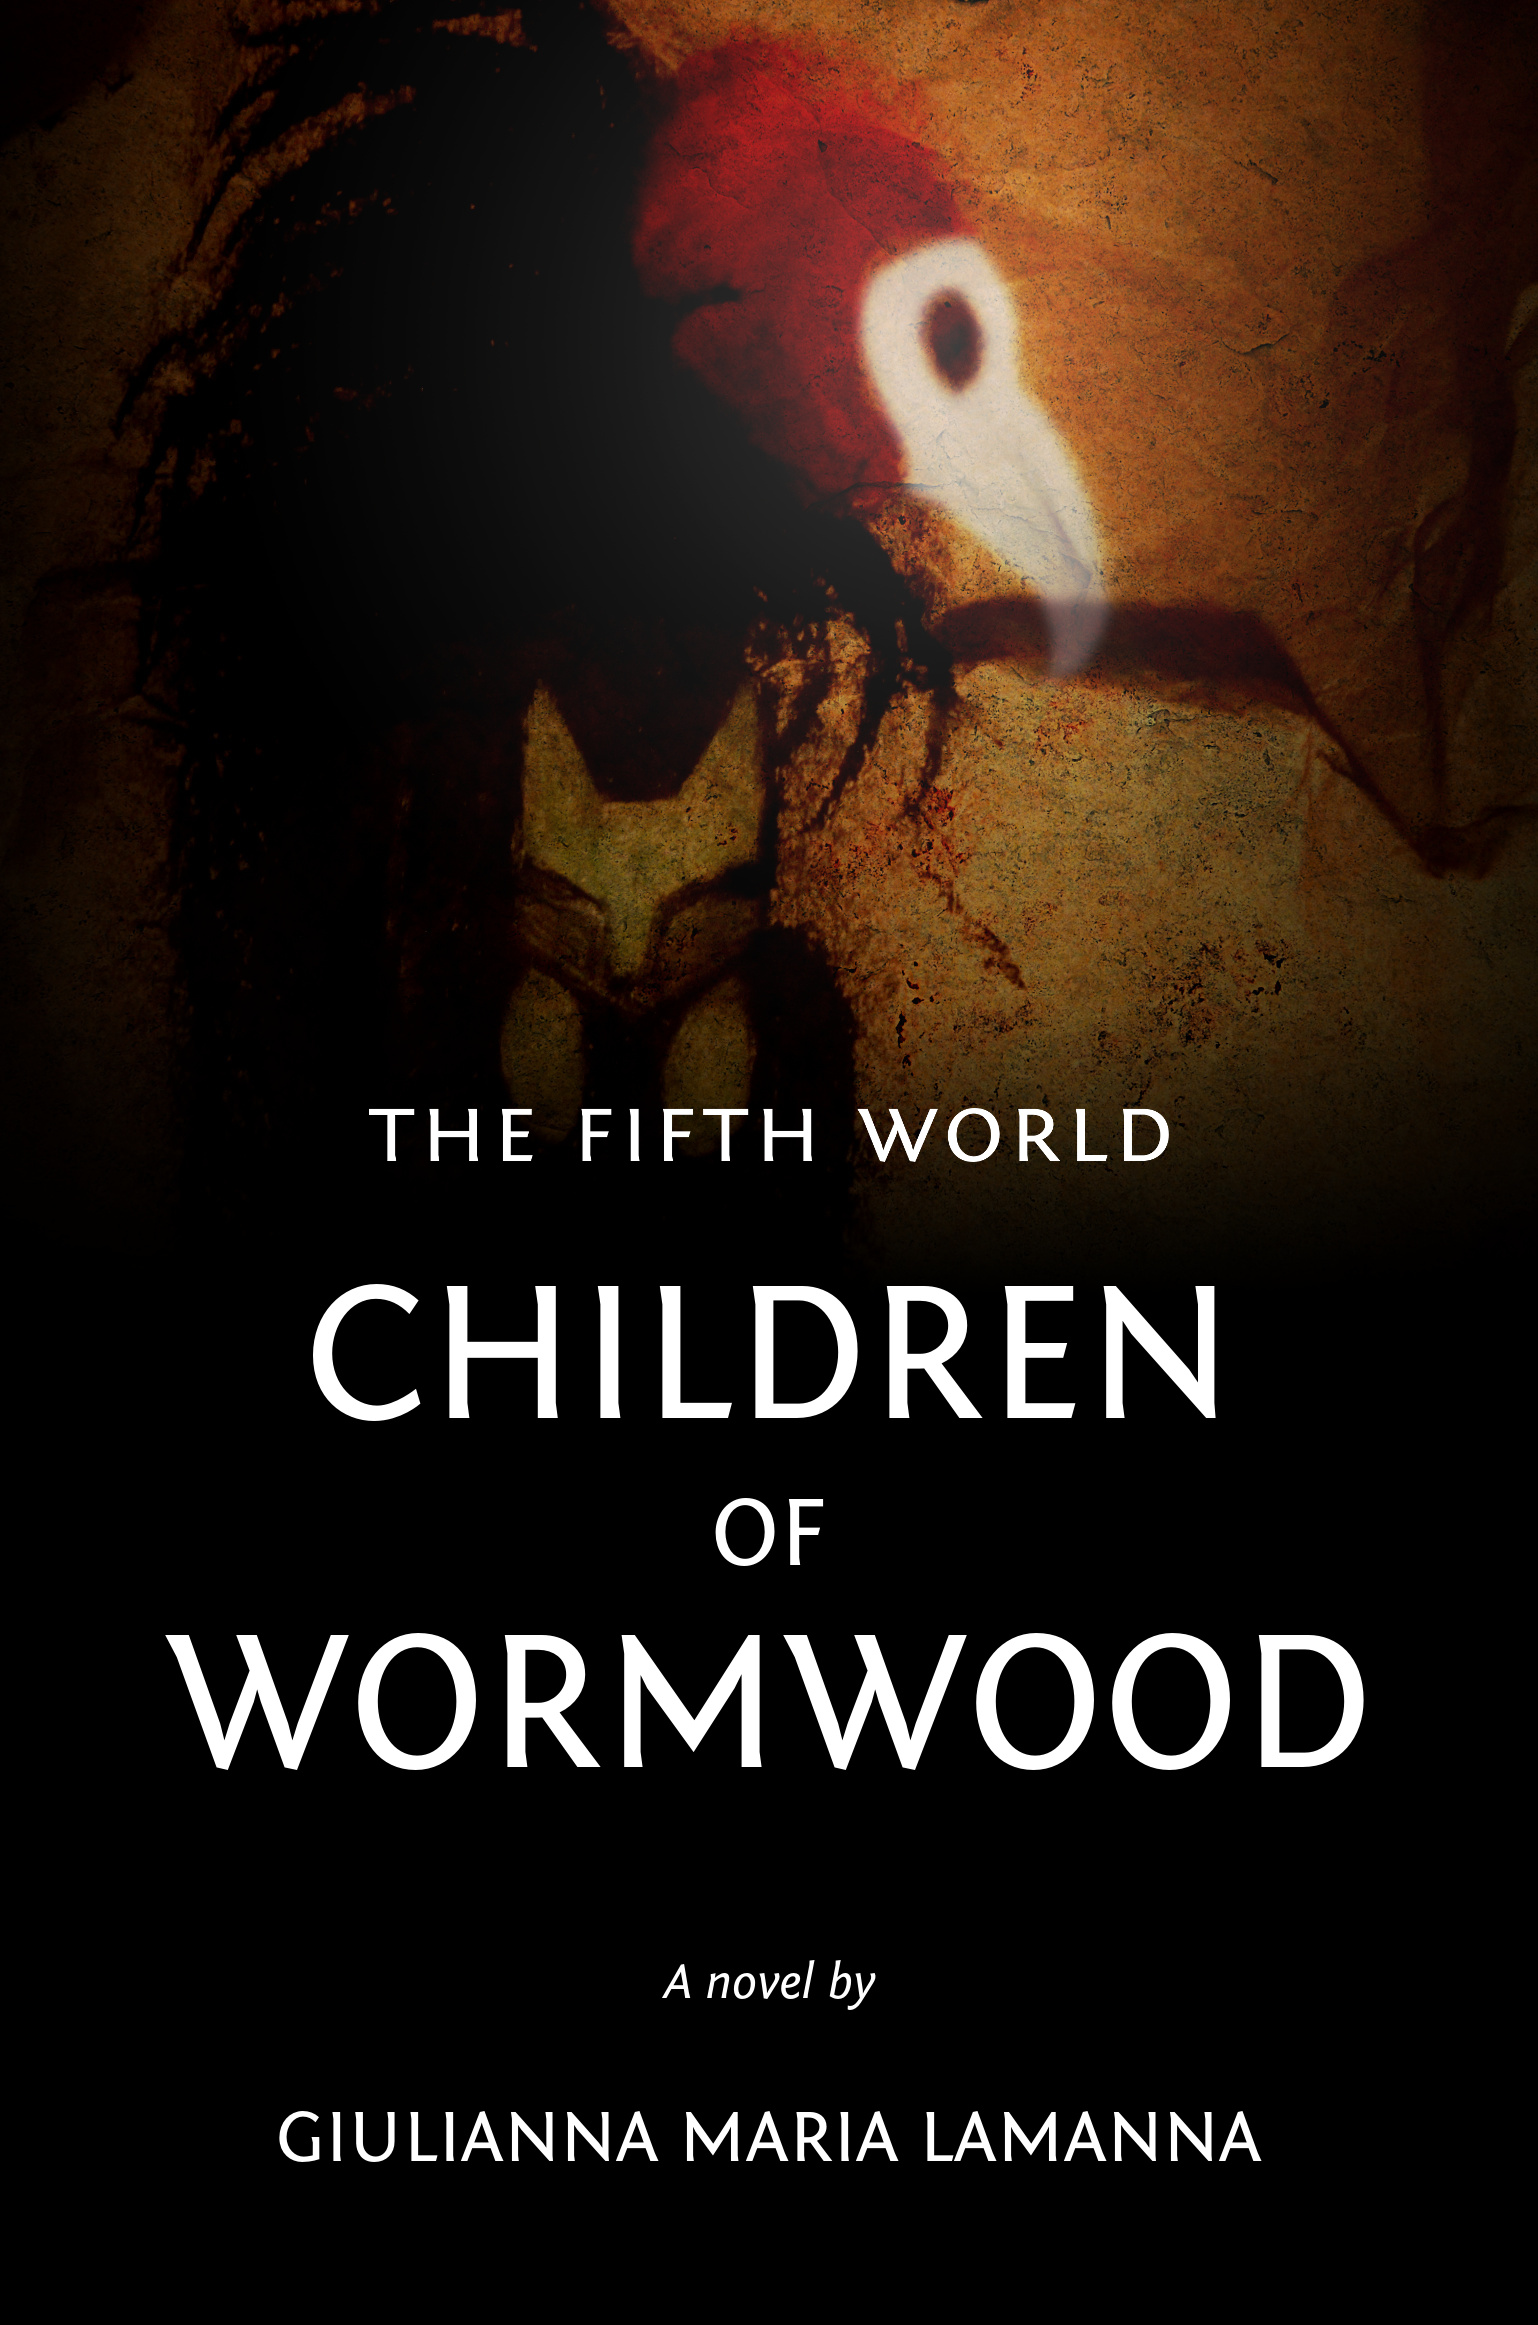 Children of Wormwood